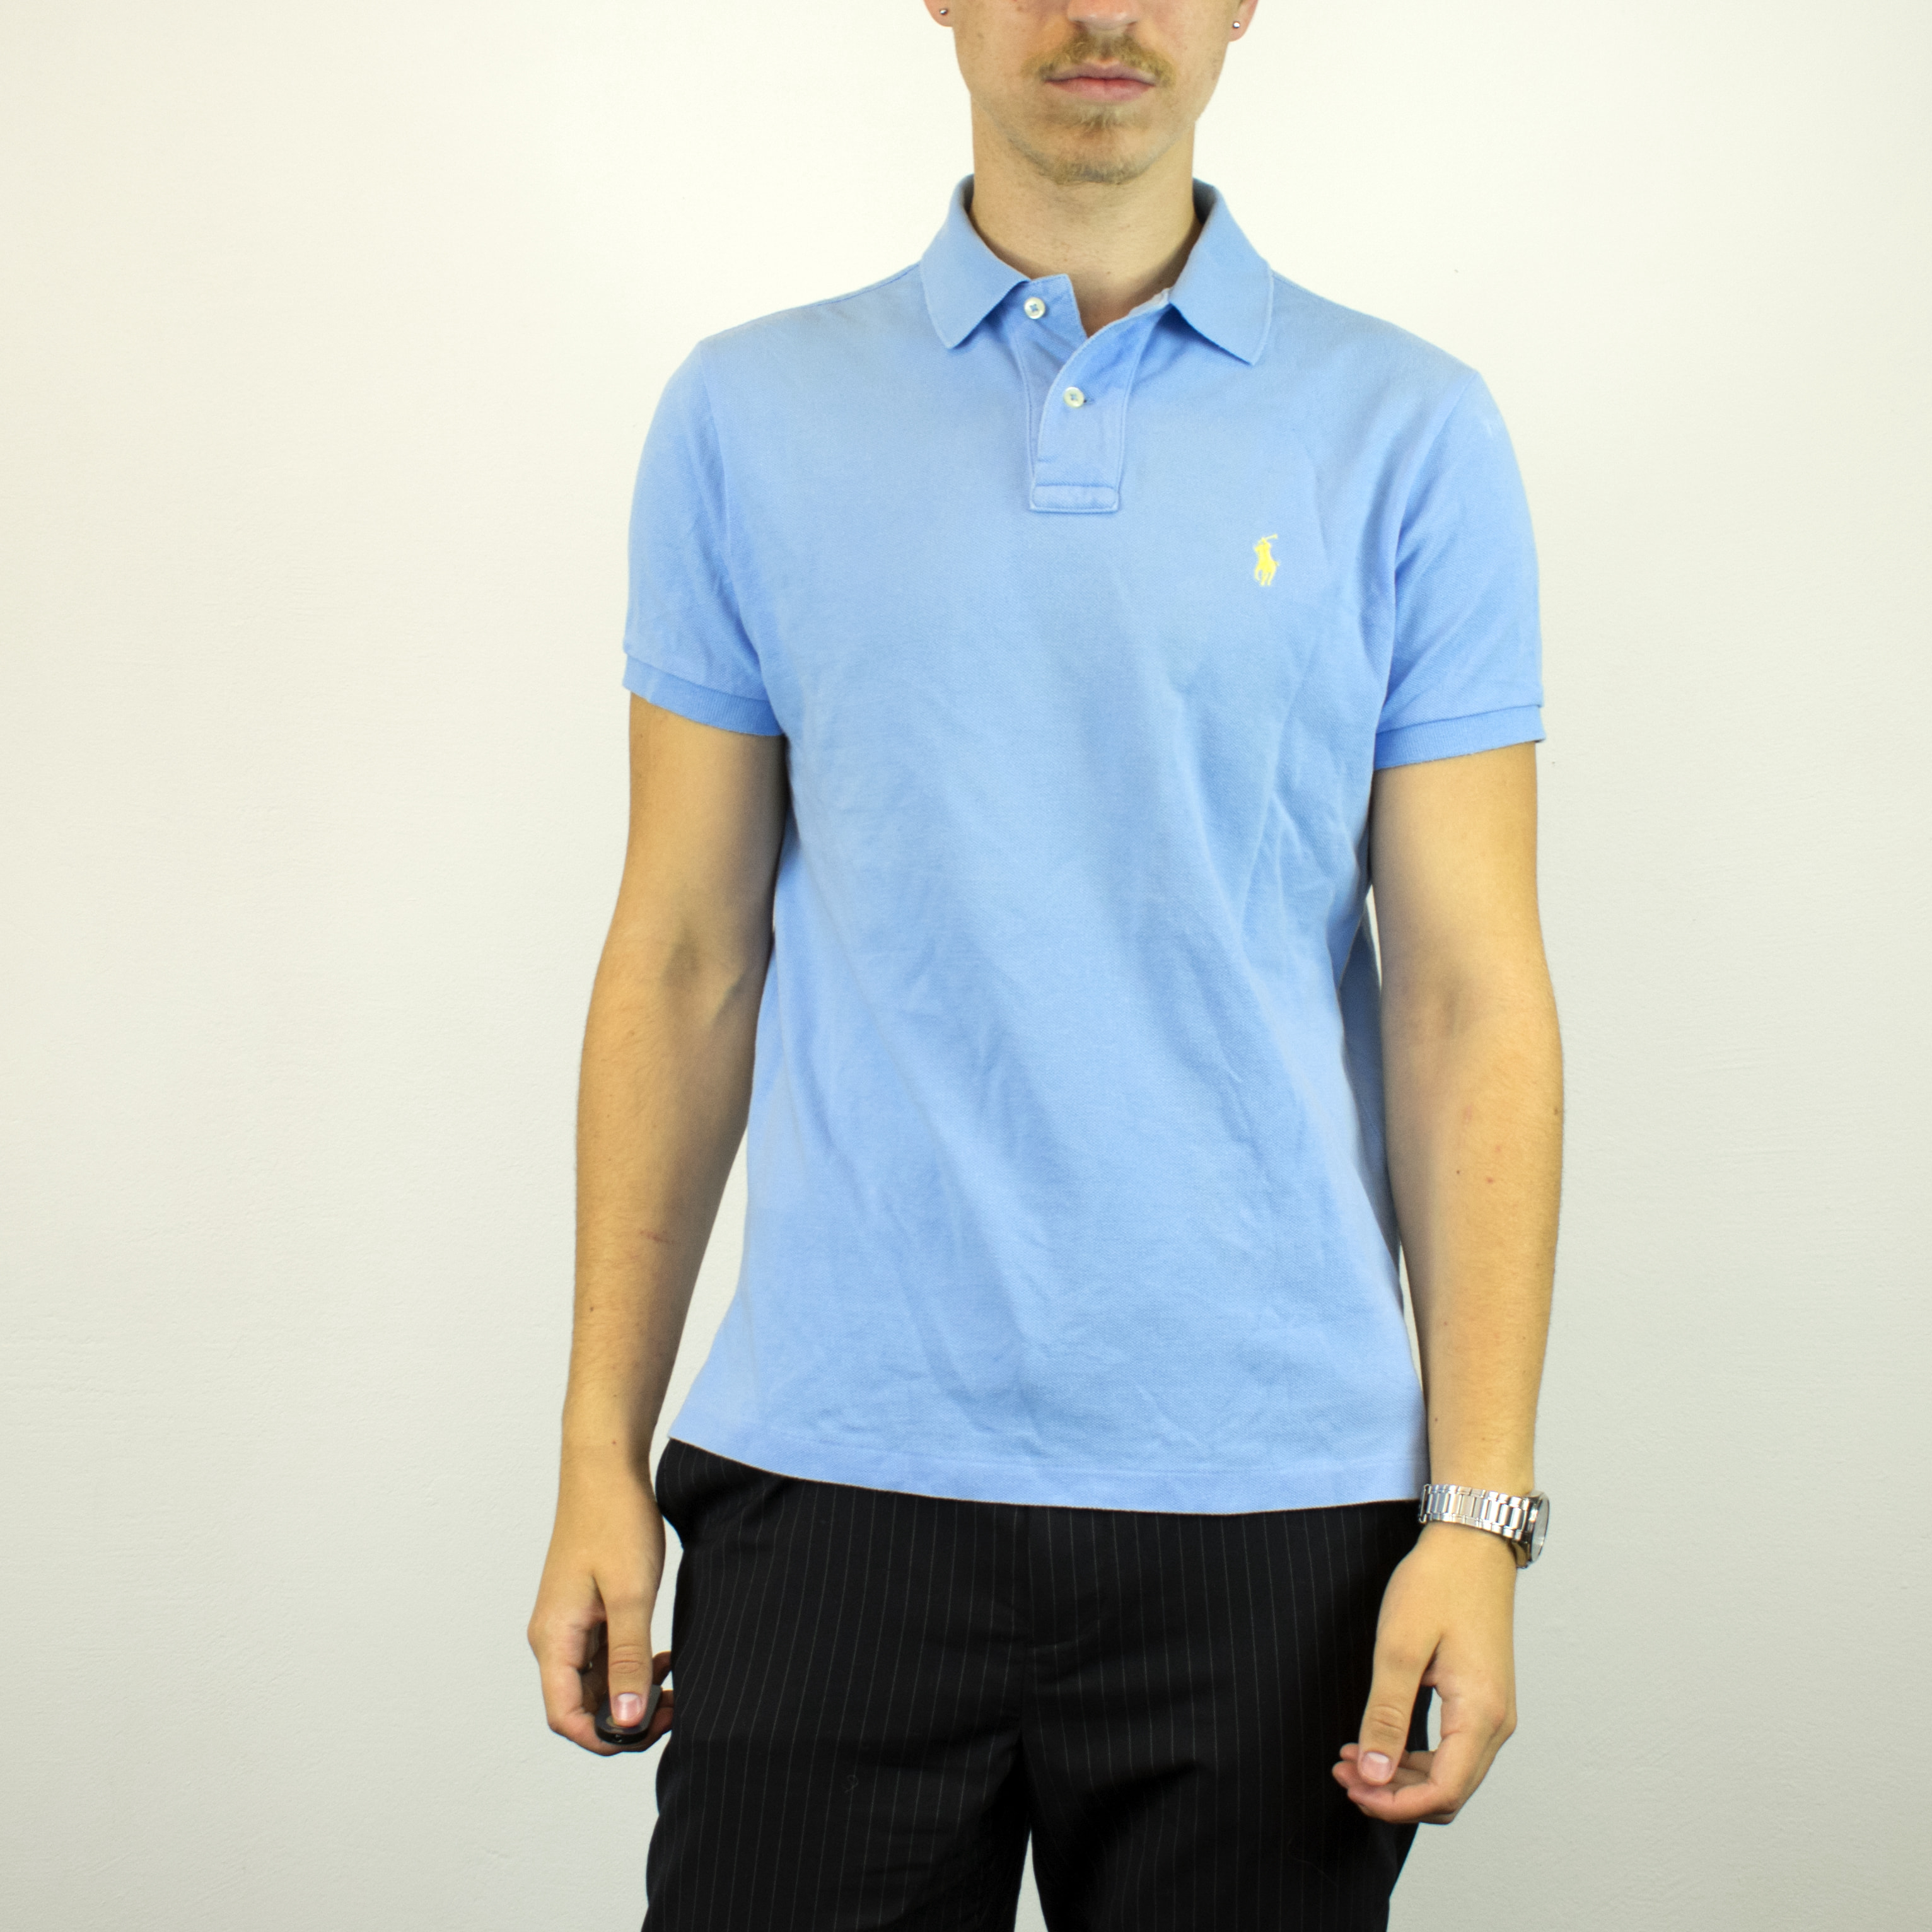 Unisex Vintage Ralph Lauren polo shirt in cyan has a small logo on the front size M